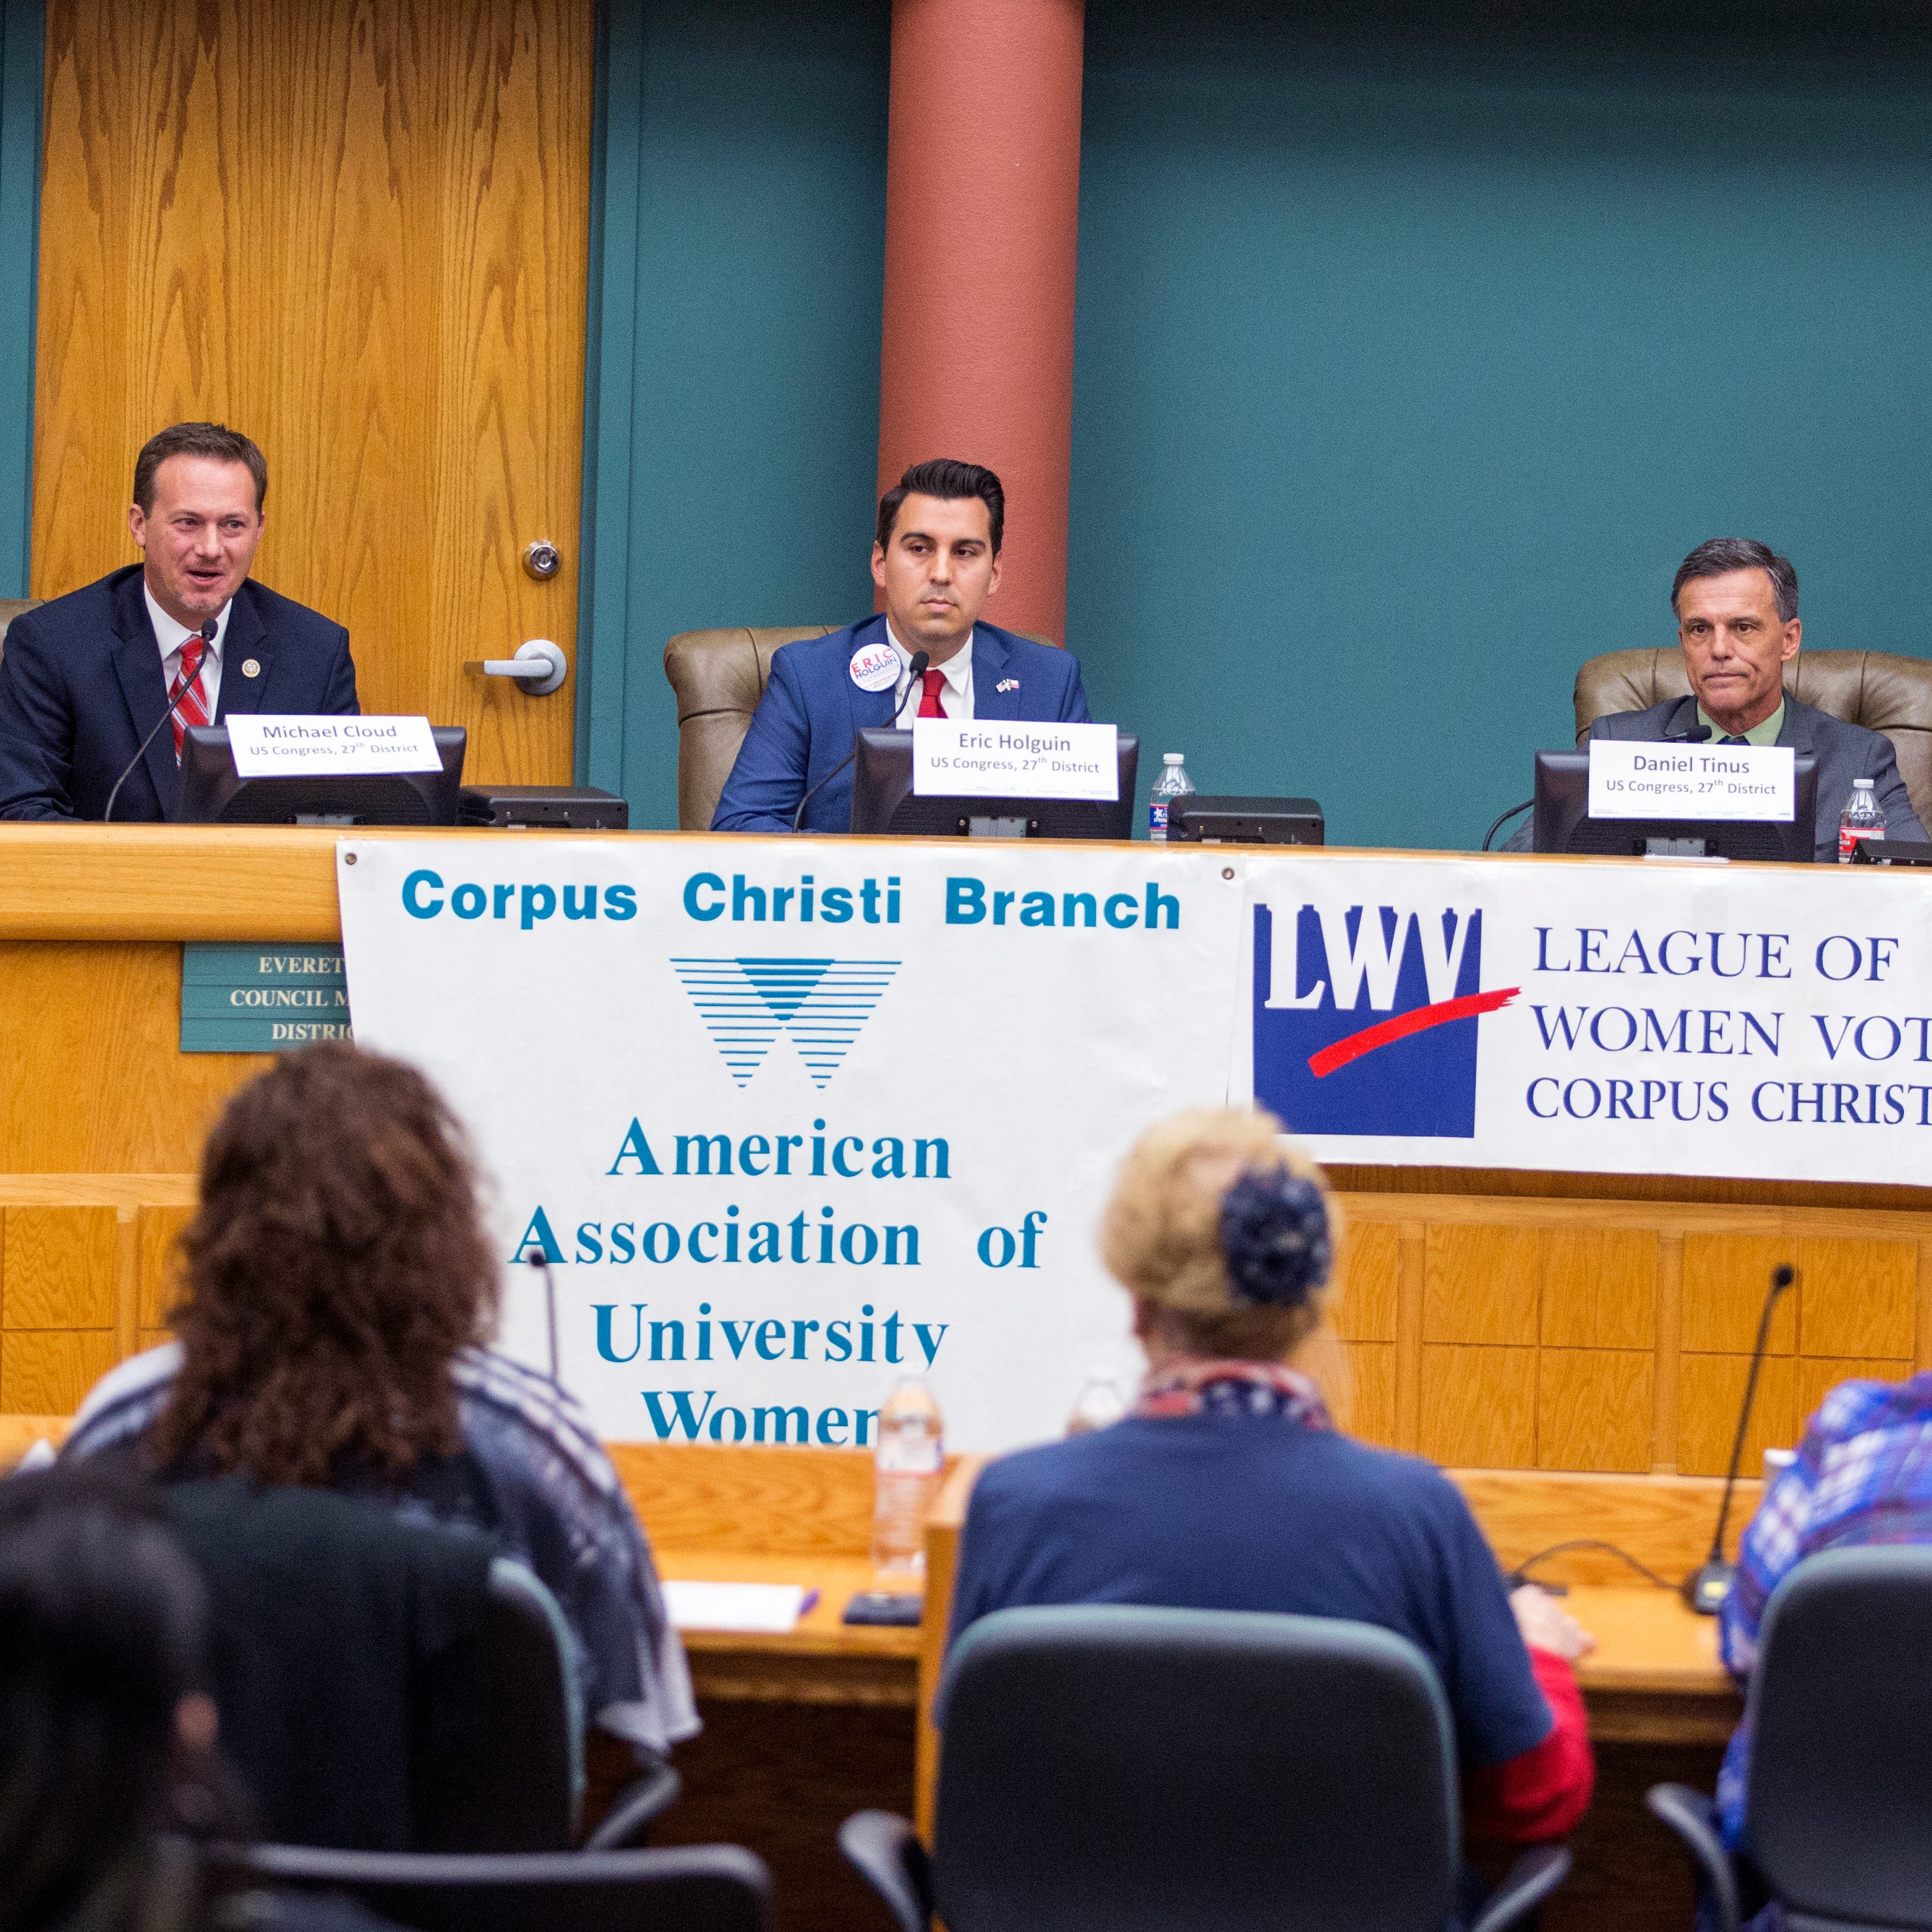 Texas midterm elections: Candidates for Texas' 27th Congressional District appear at forum